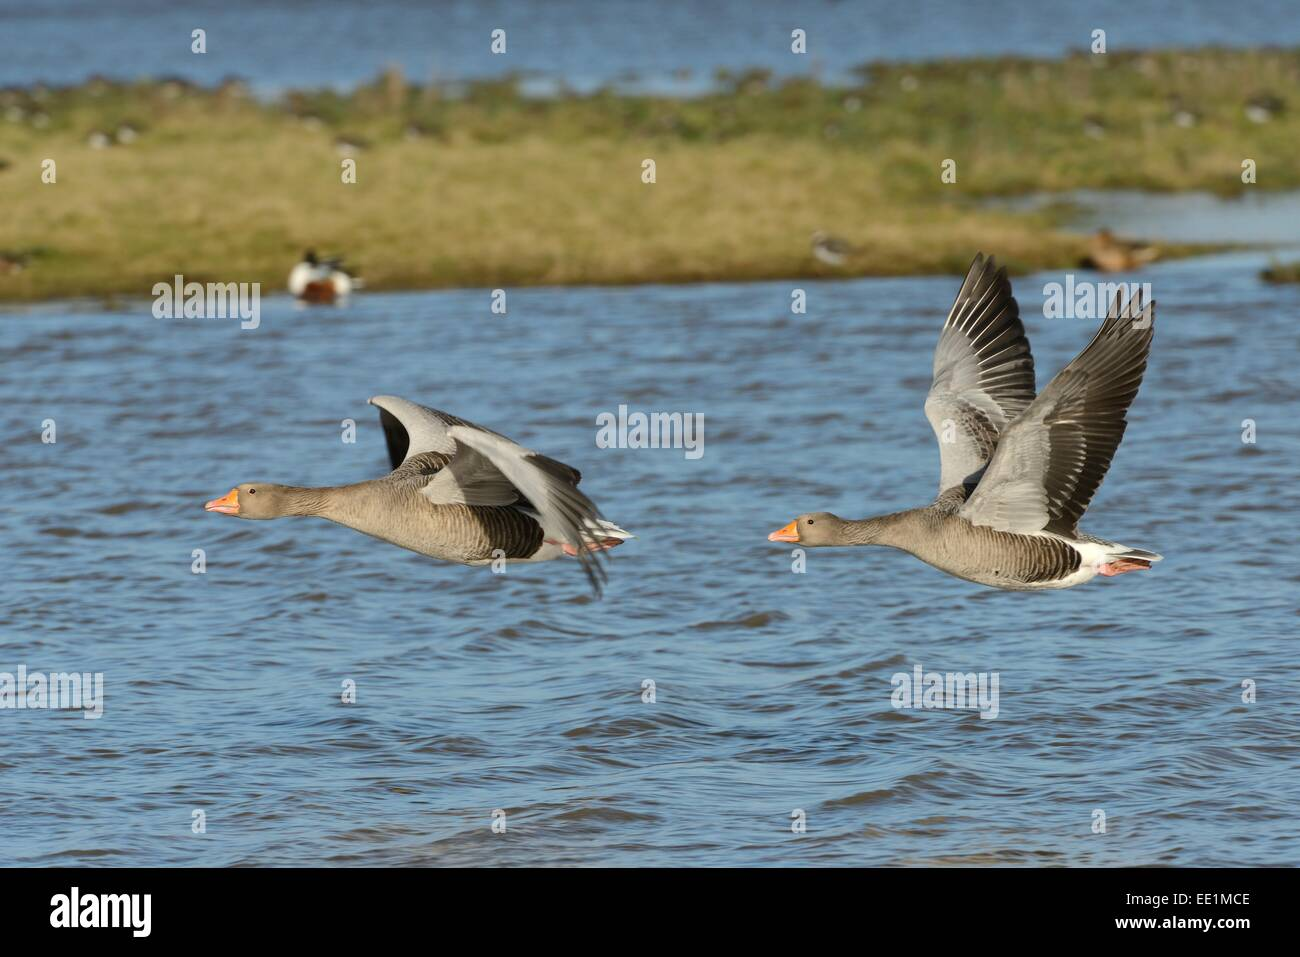 Greylag goose pair (Anser anser) flying over flooded pastureland, Gloucestershire, England, United Kingdom, Europe - Stock Image